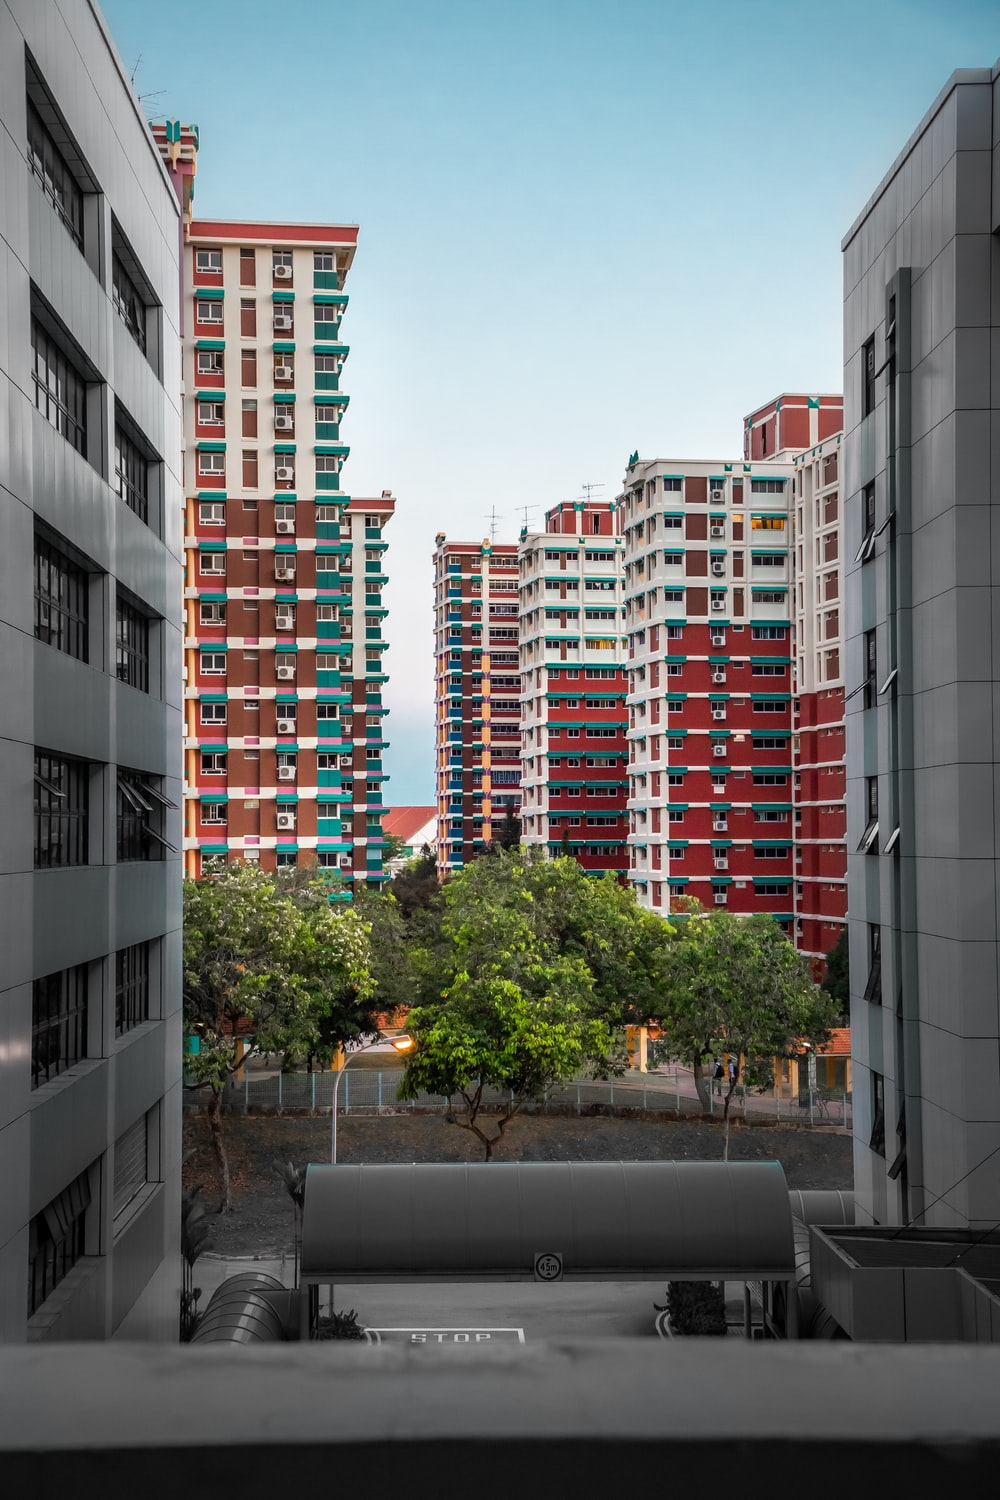 red and gray high-rise buildings